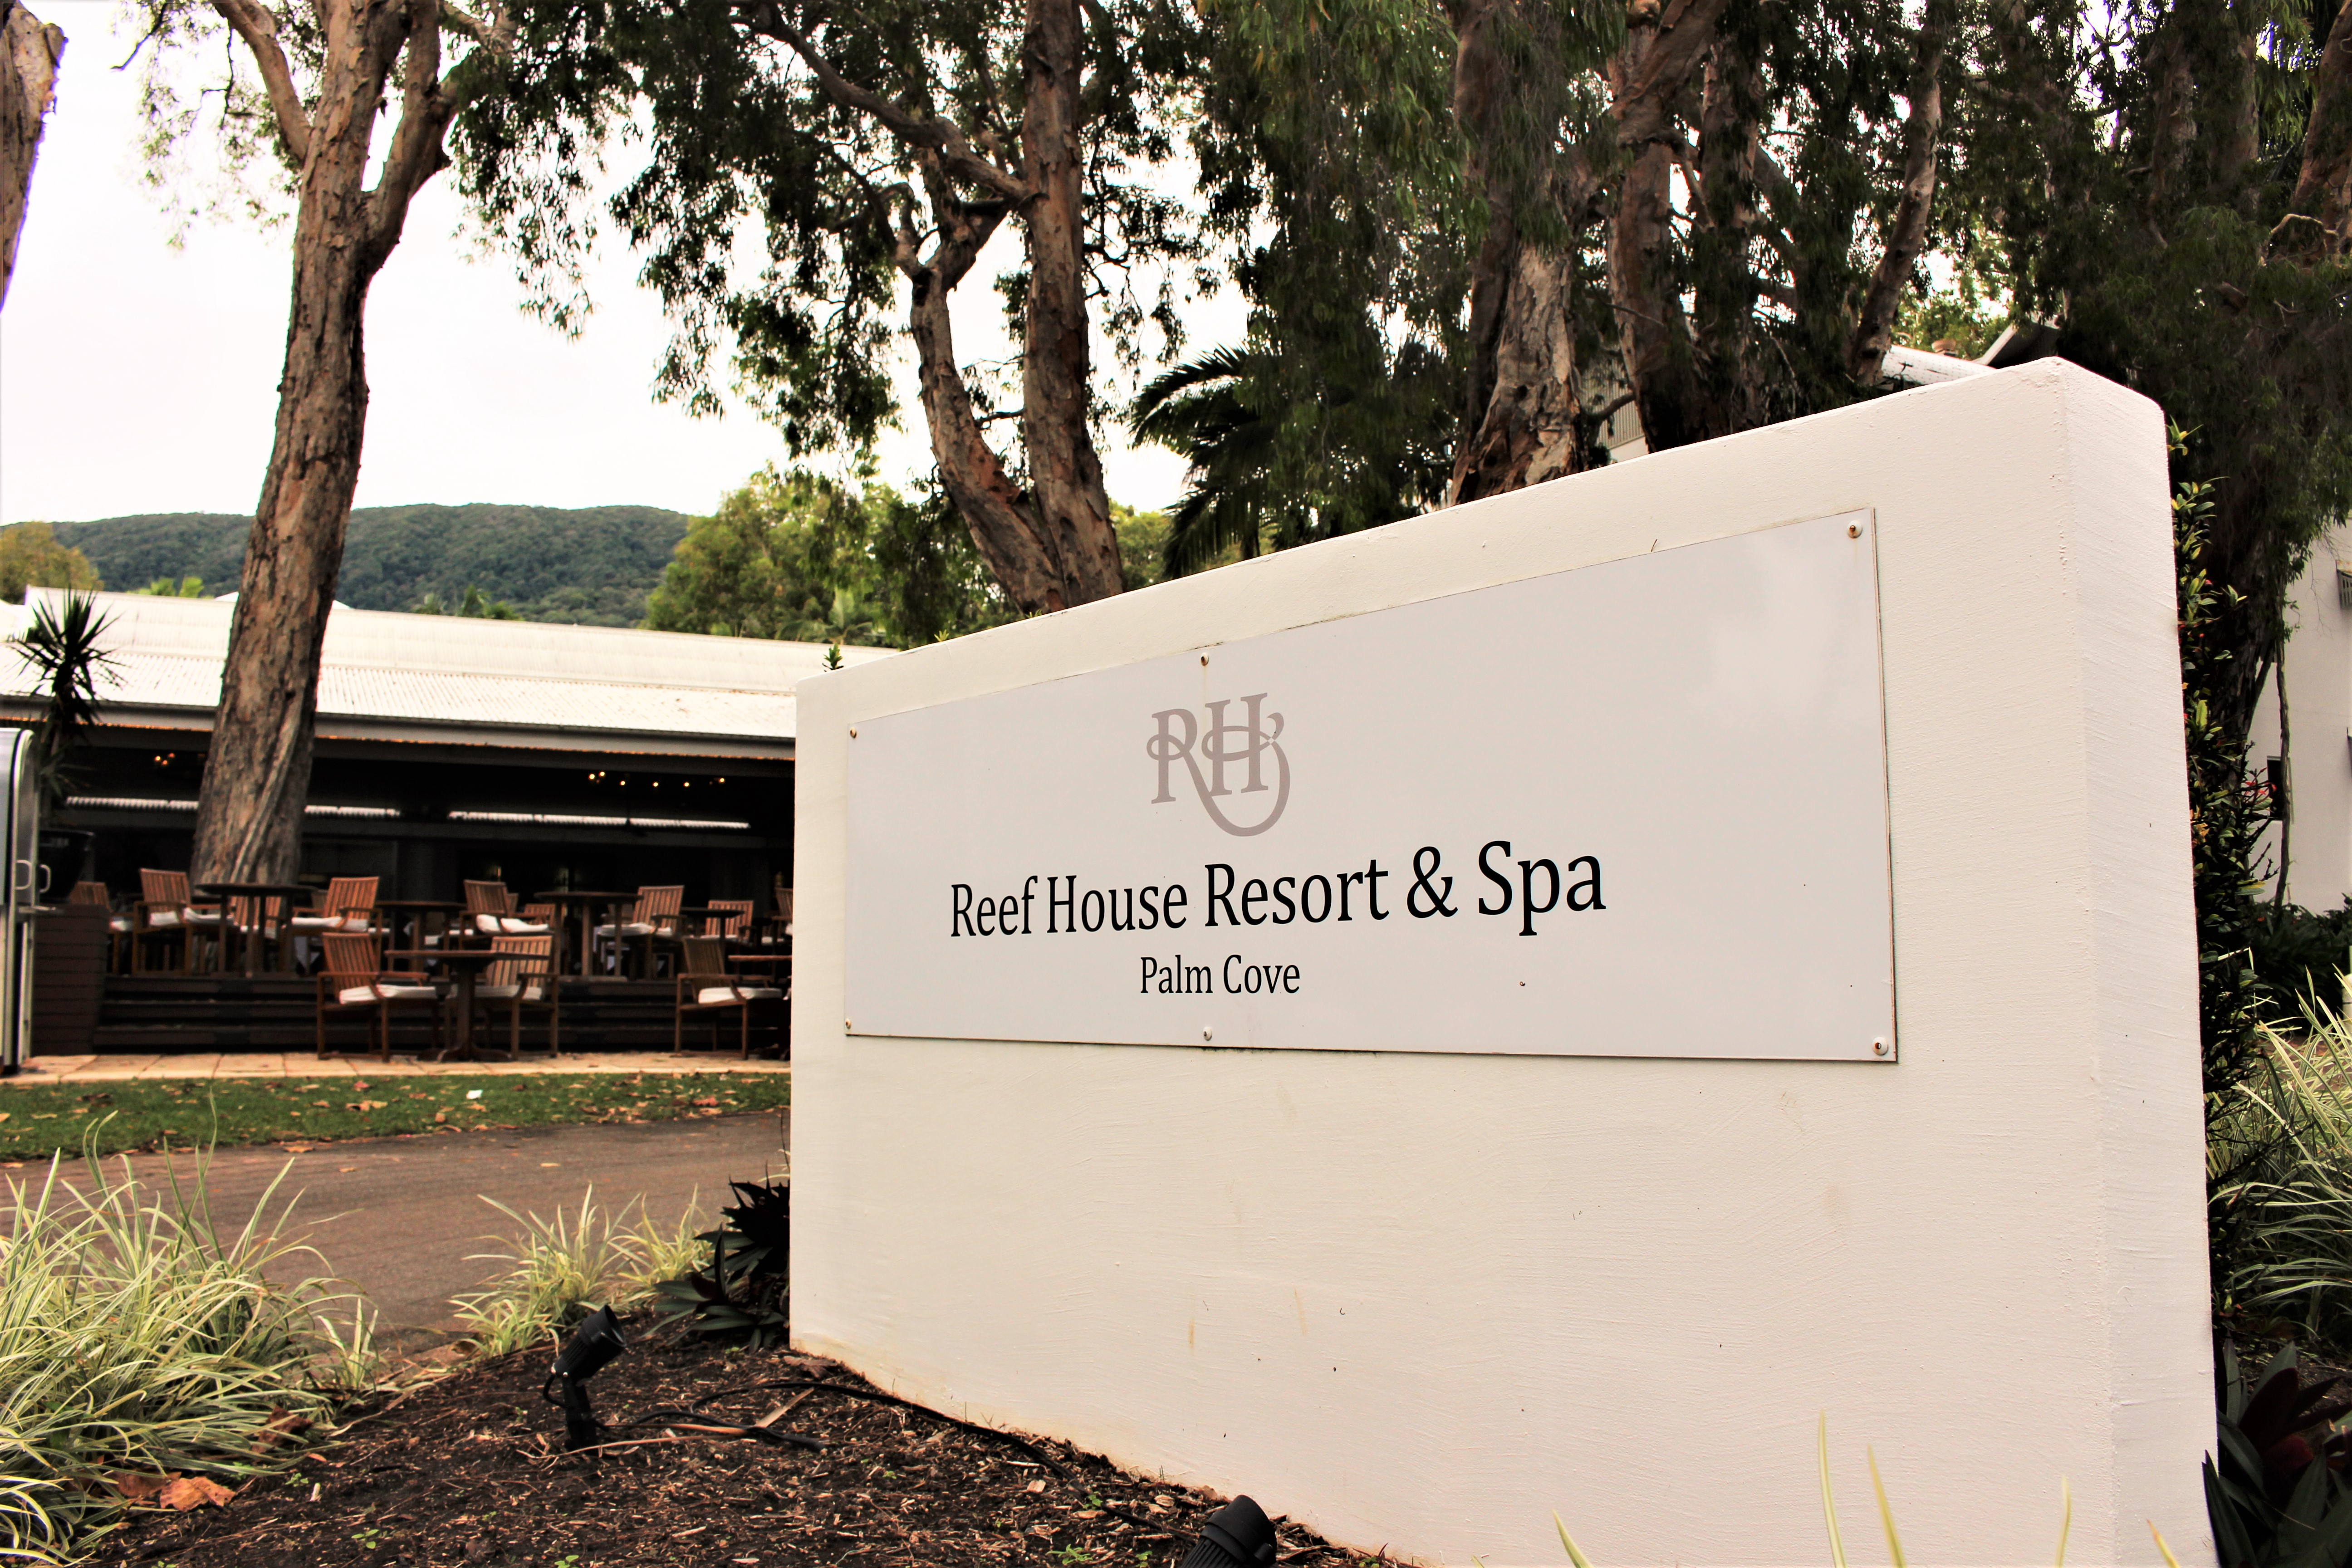 Reef House Hotel & Spa